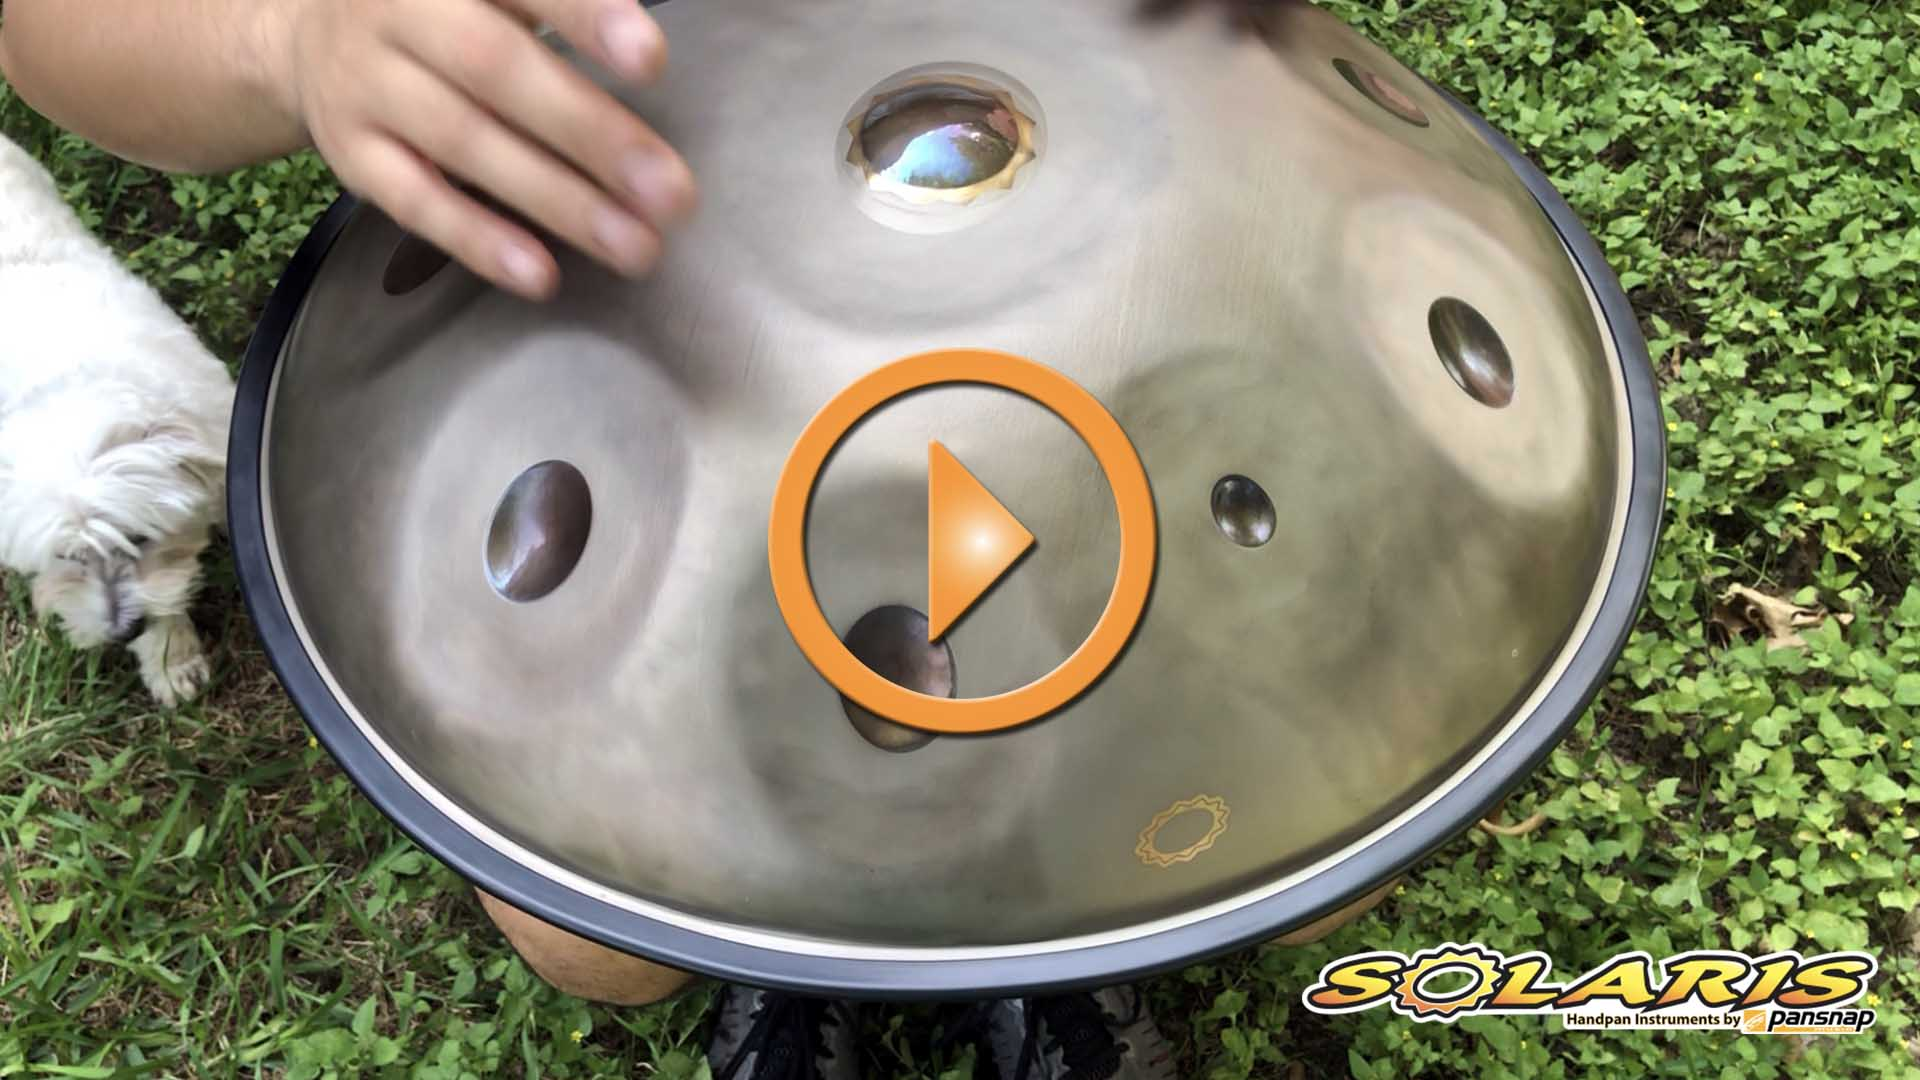 Solaris handpan Low Pygmy in F